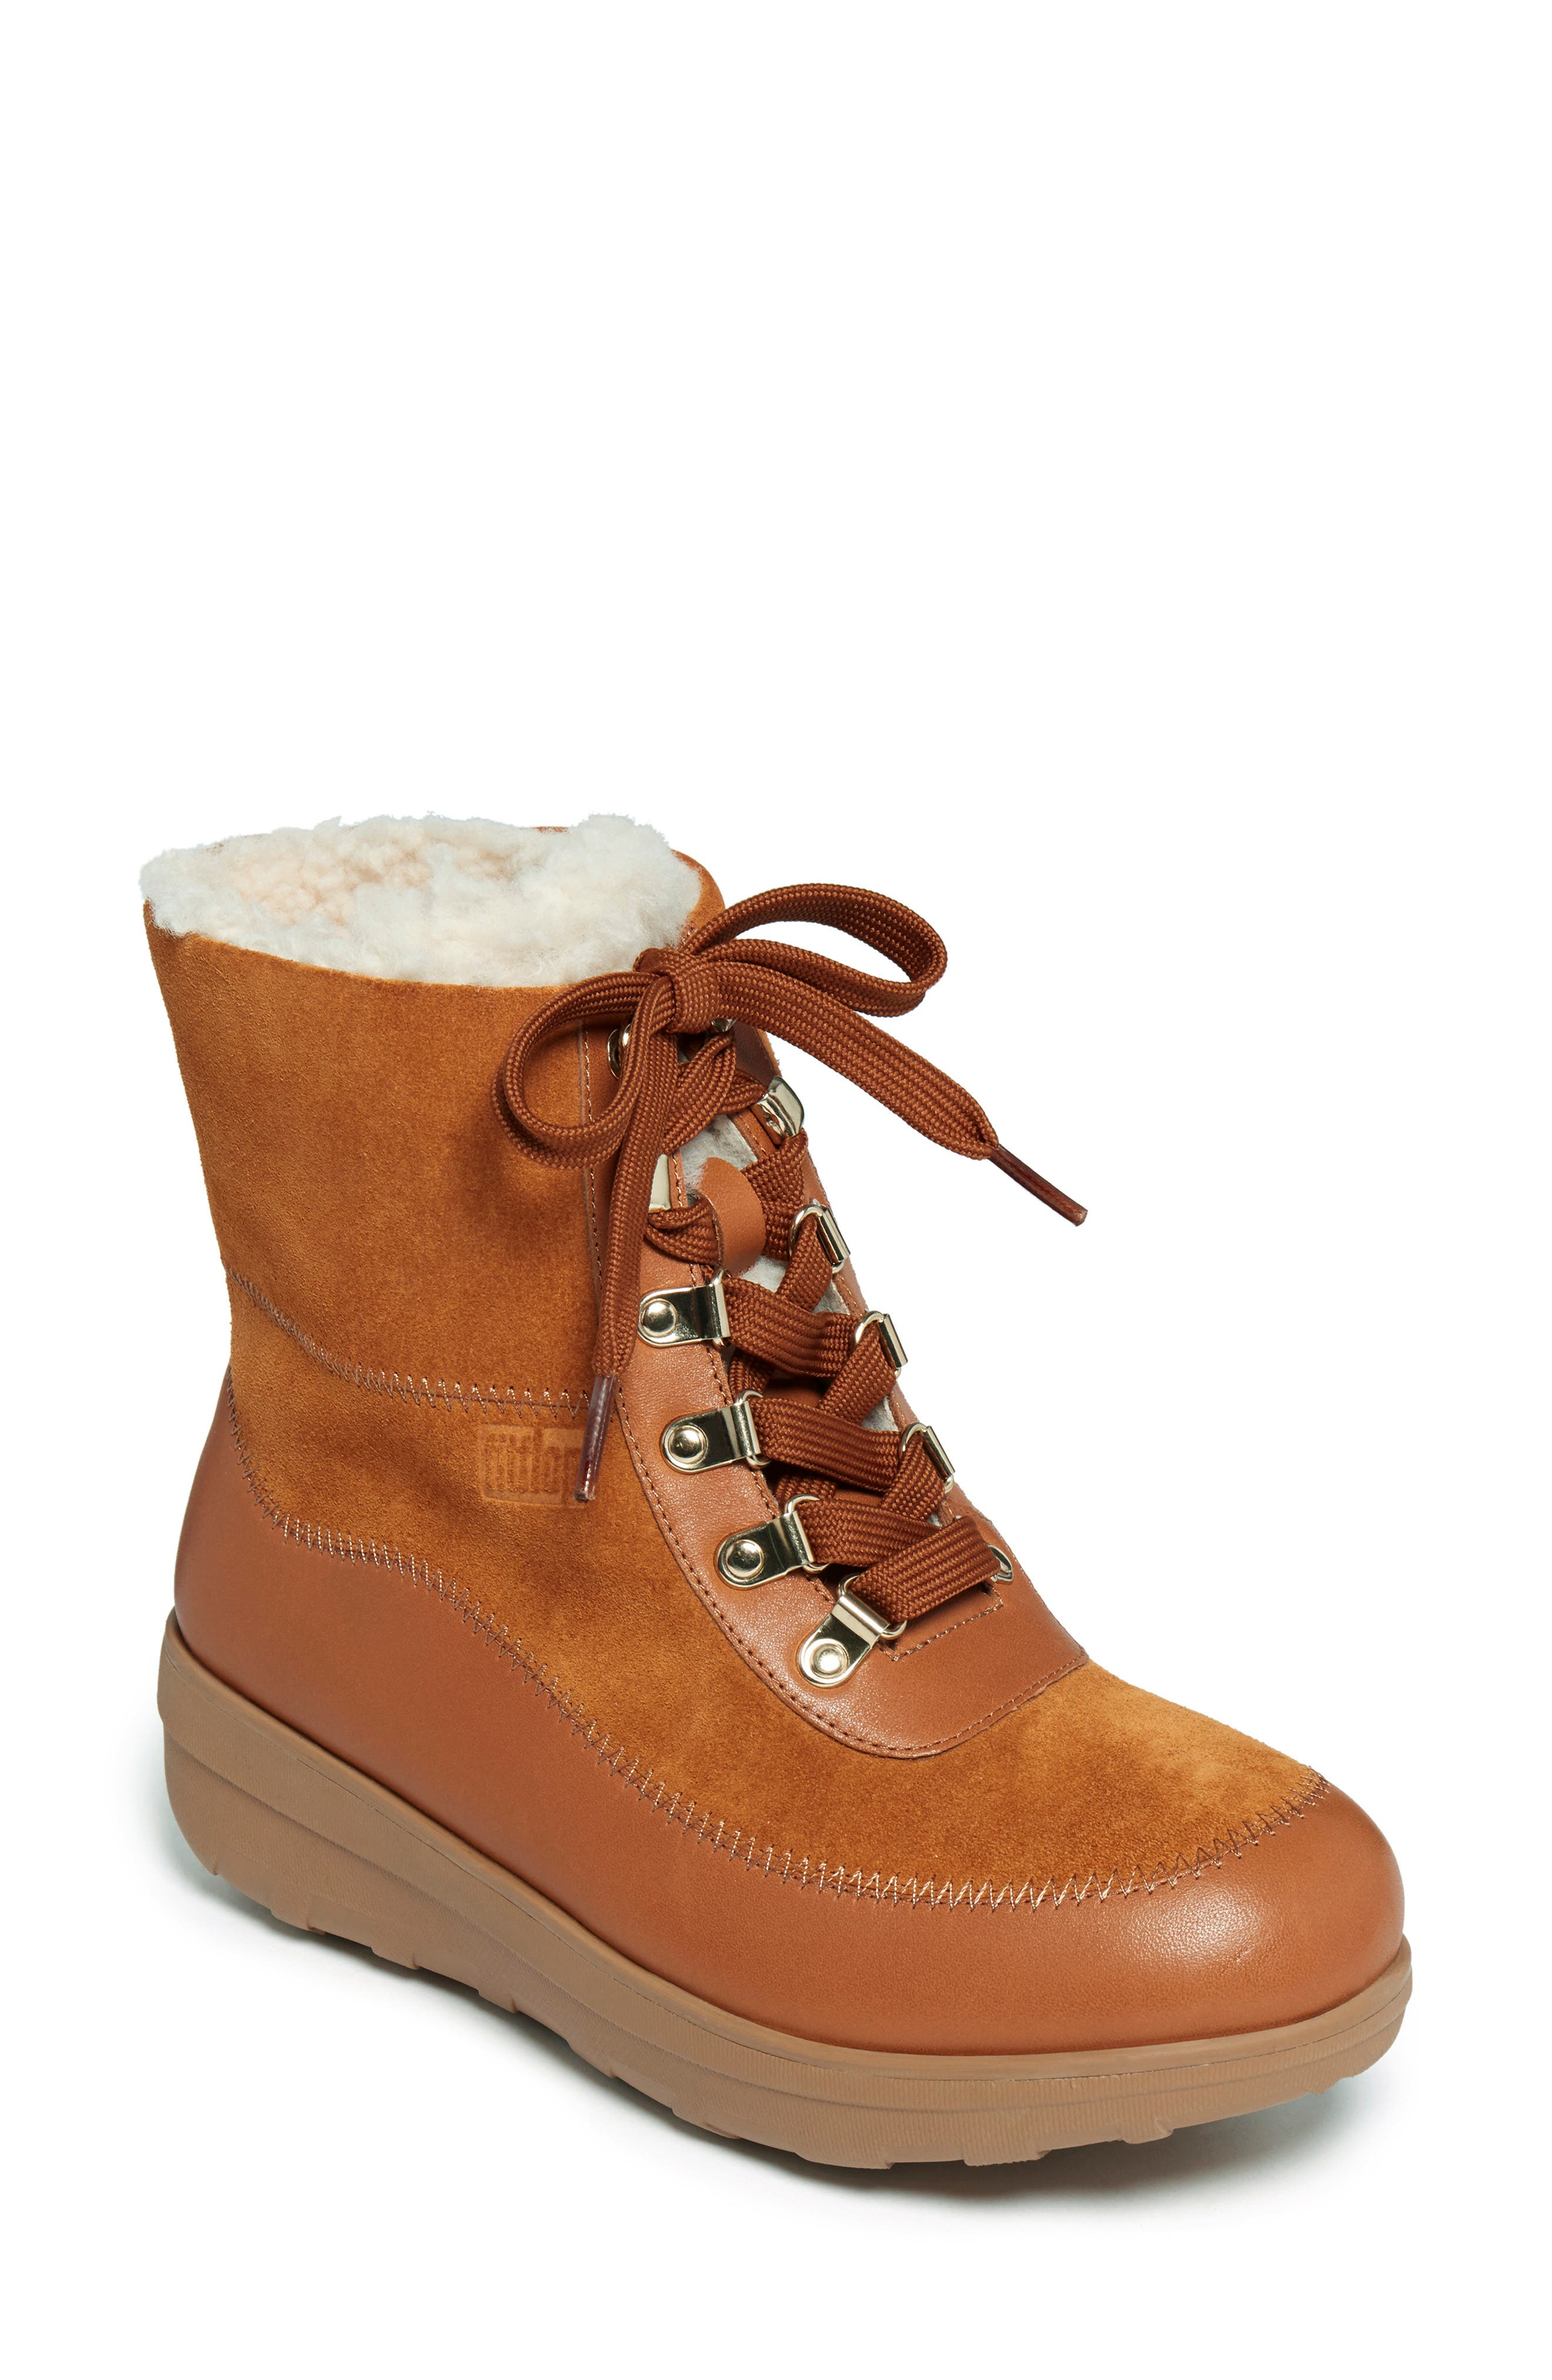 Mukluk Iii Genuine Shearling Lined Water Resistant Boot